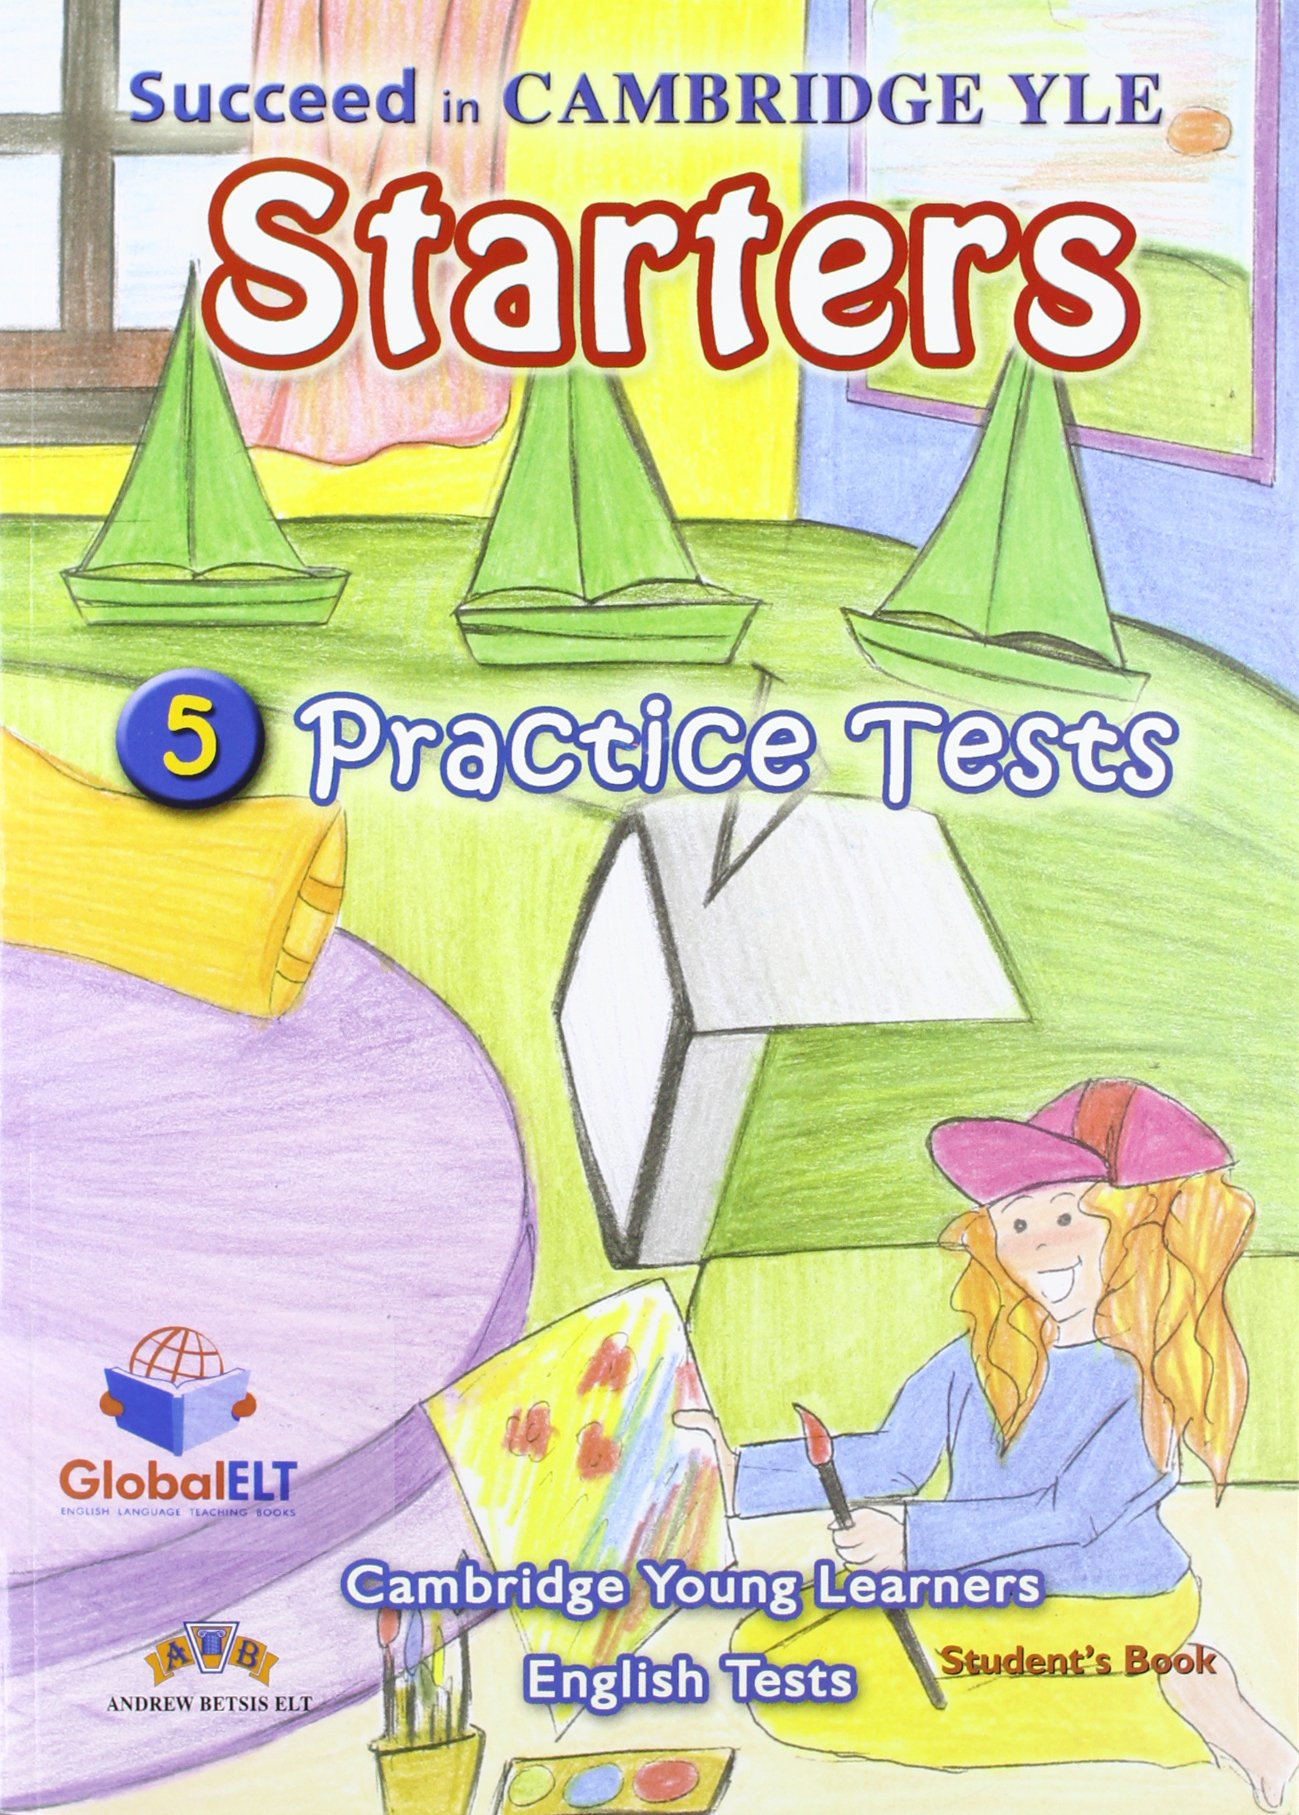 Read Online Succeed in Cambridge YLE Starters - Self Study Edition: 5 Practice Tests PDF